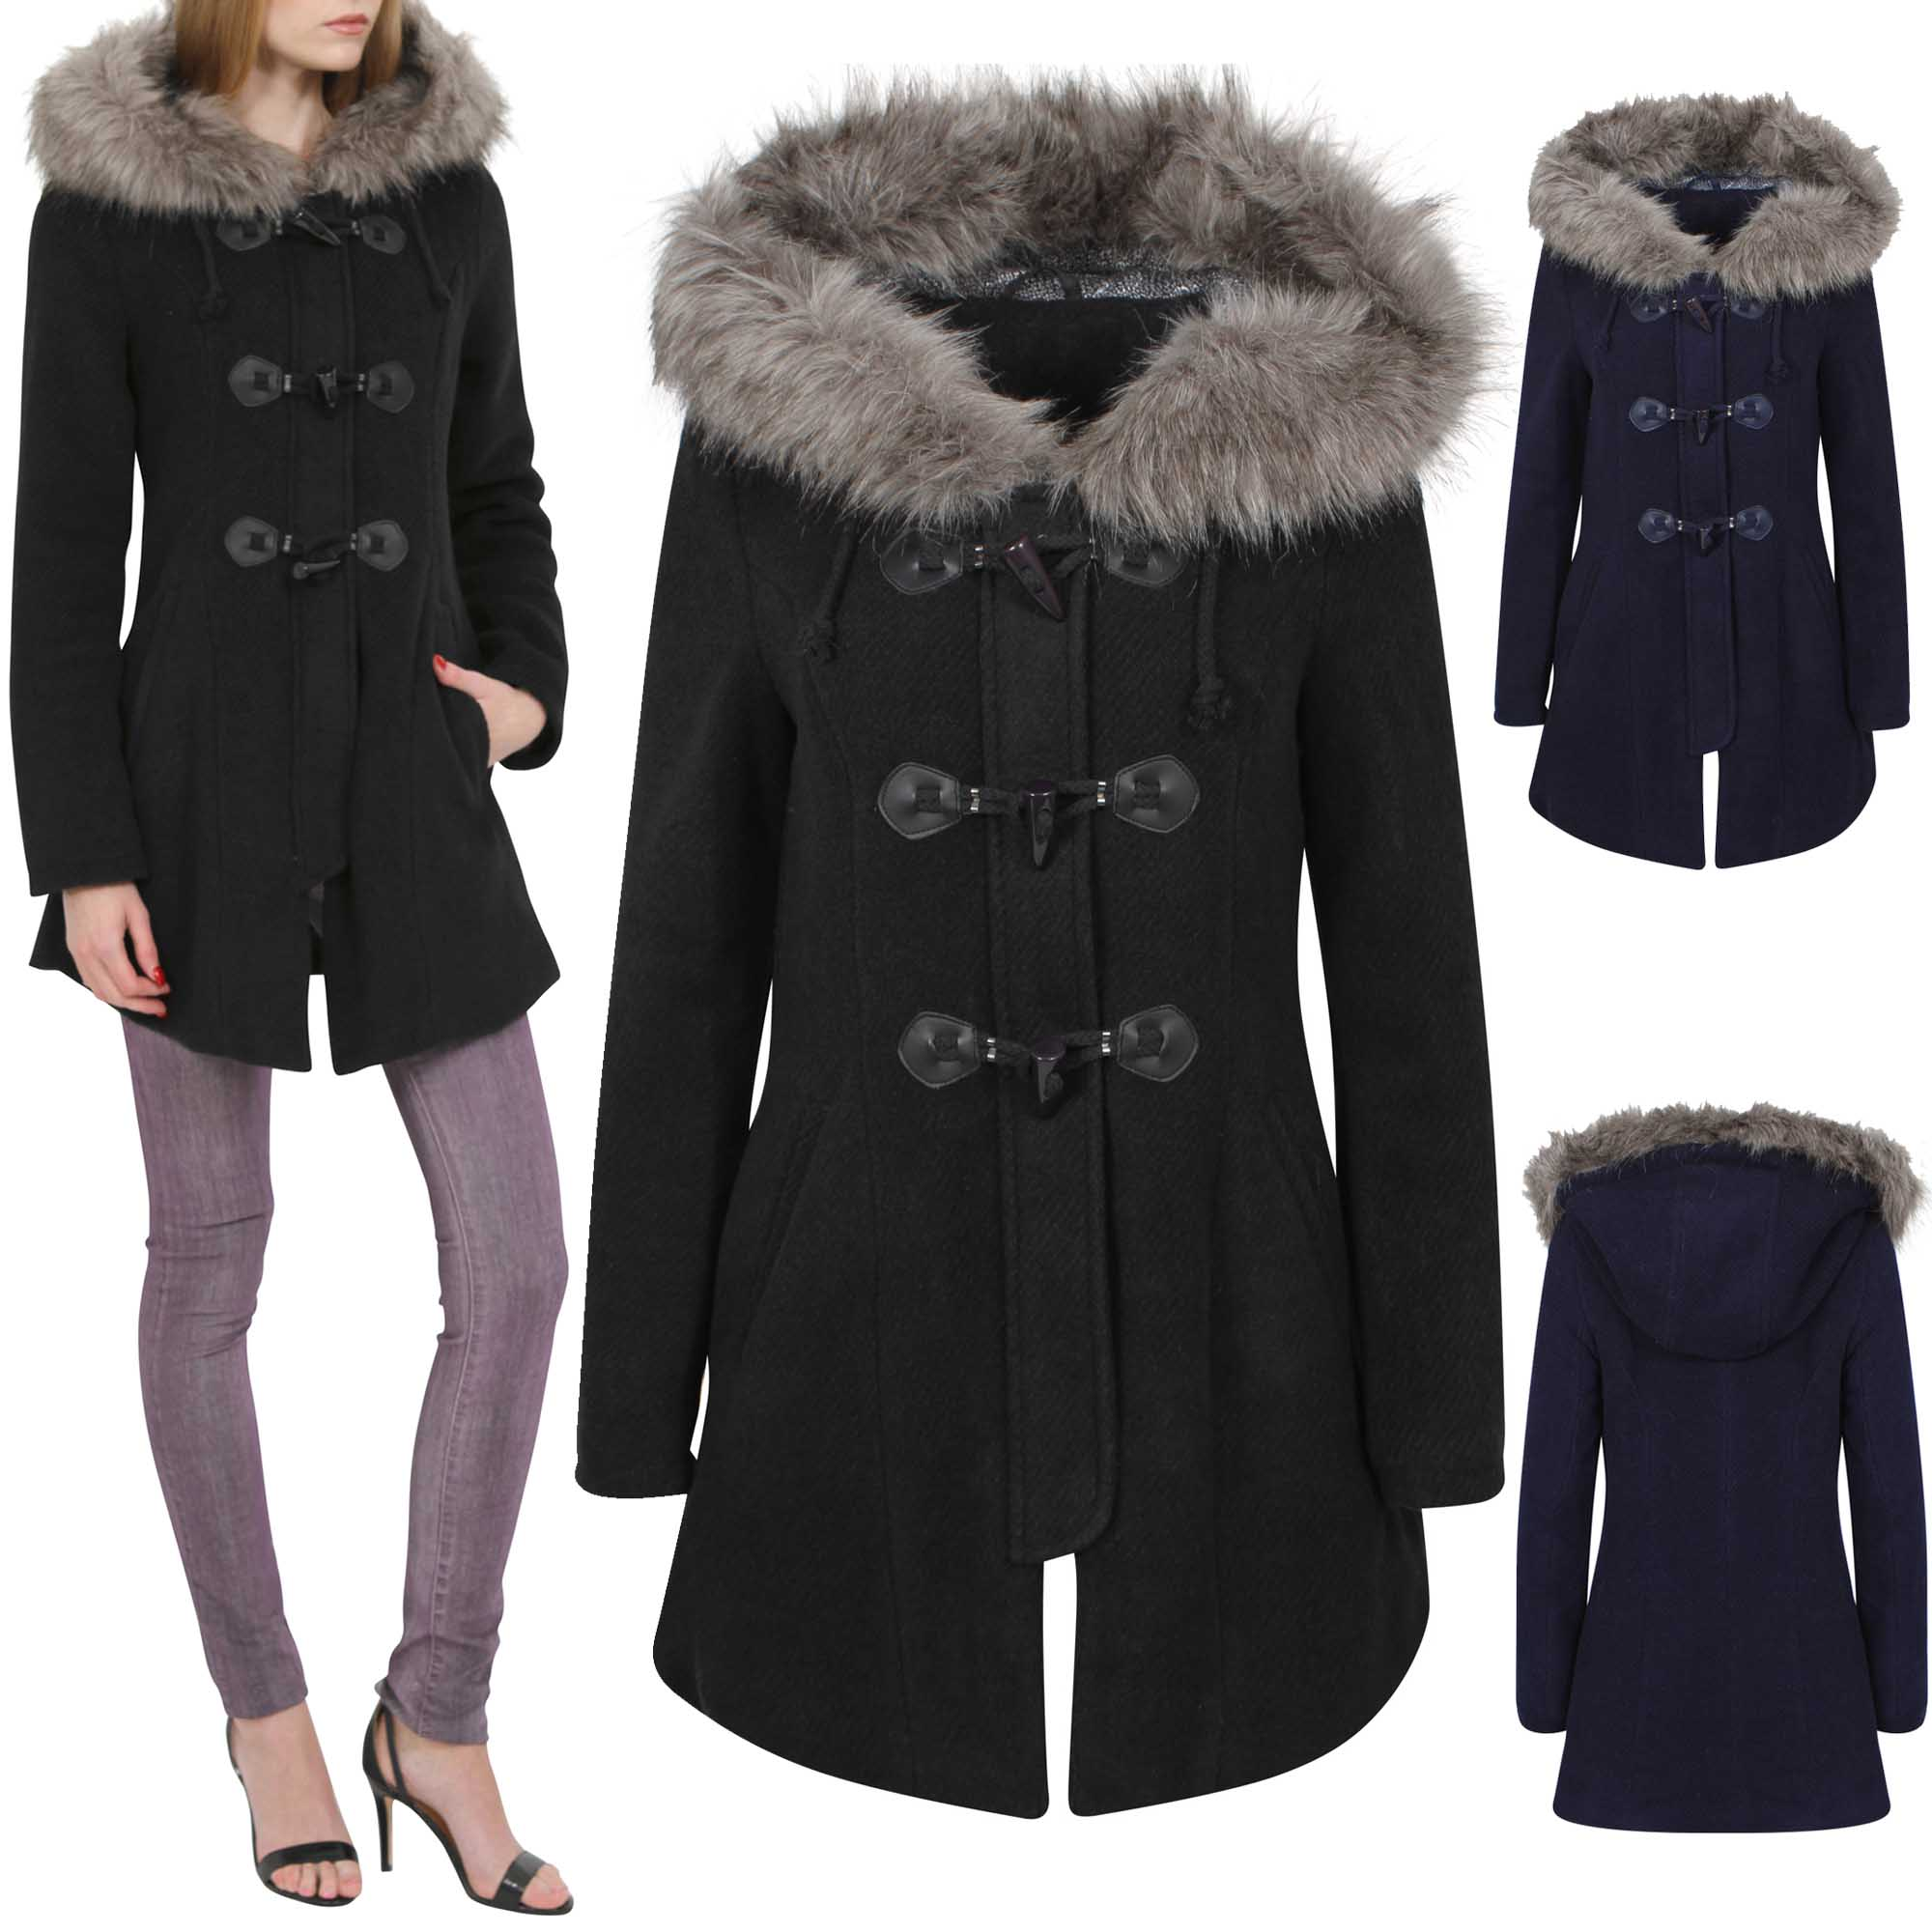 Womens Hooded Winter Coat - Tradingbasis